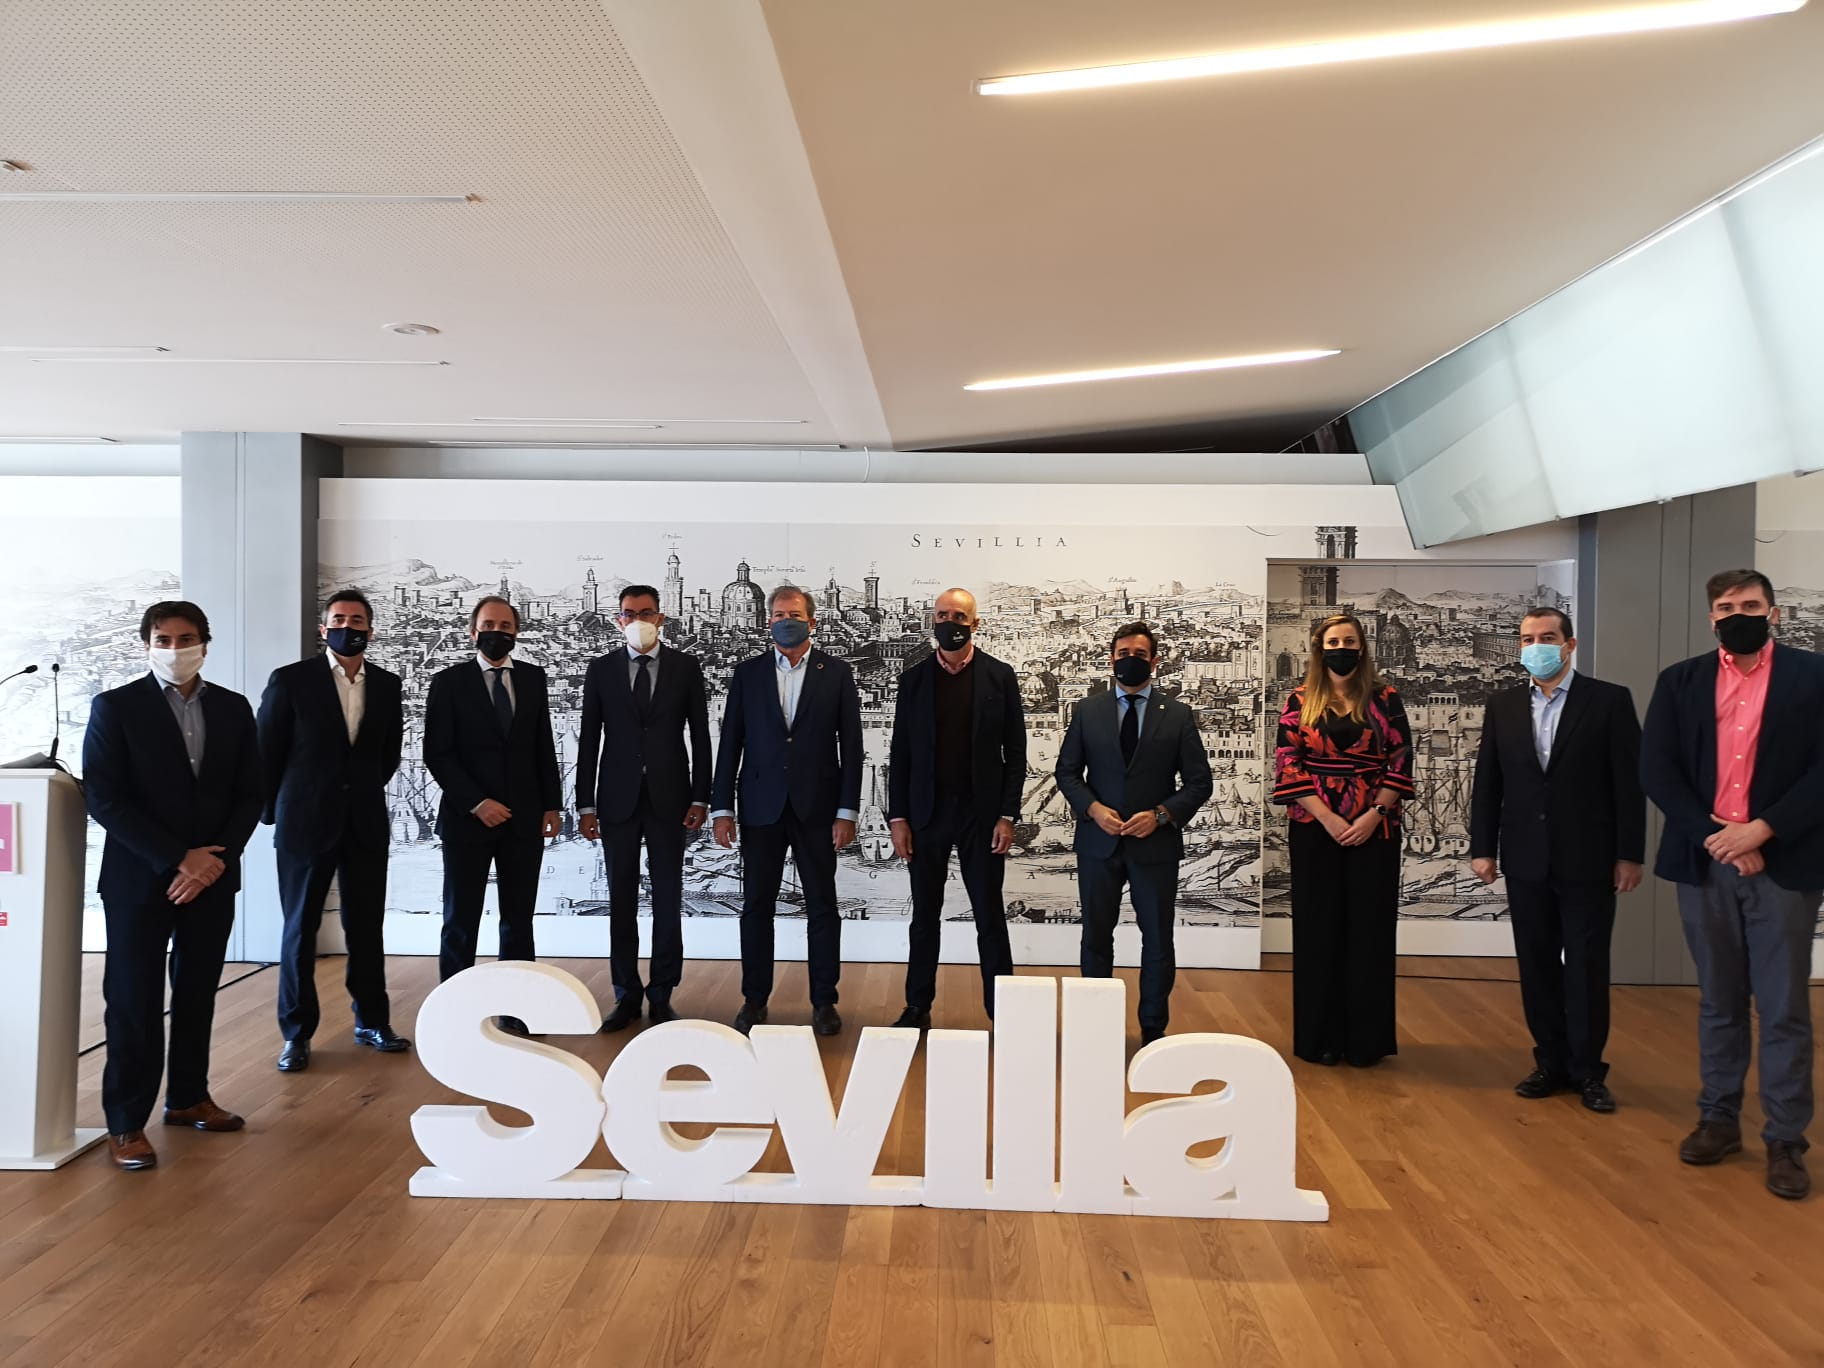 Seville will lead a tourism recovery plan with antigen tests at Tourism Innovation Summit 2020